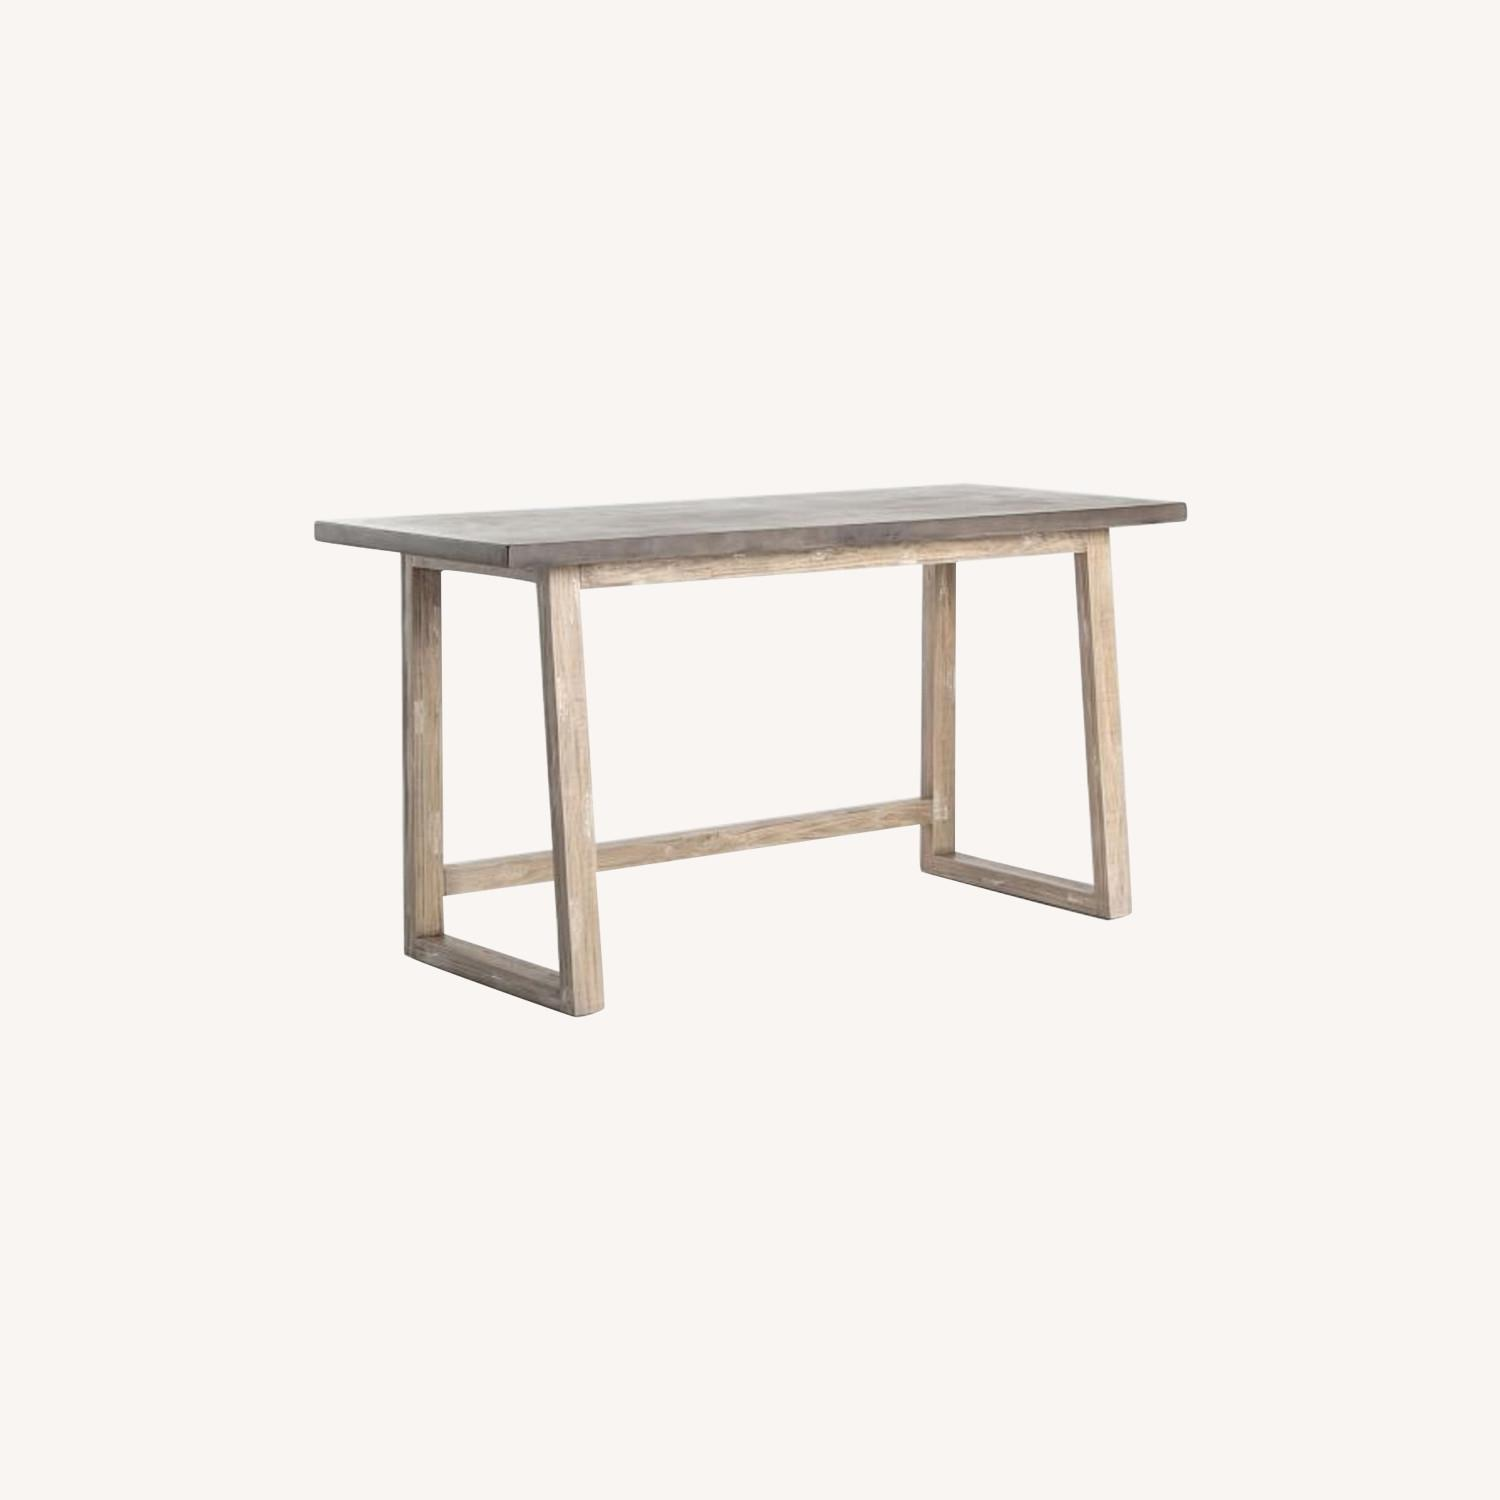 West Elm Concrete-Topped Mixed Wood Desk - image-0